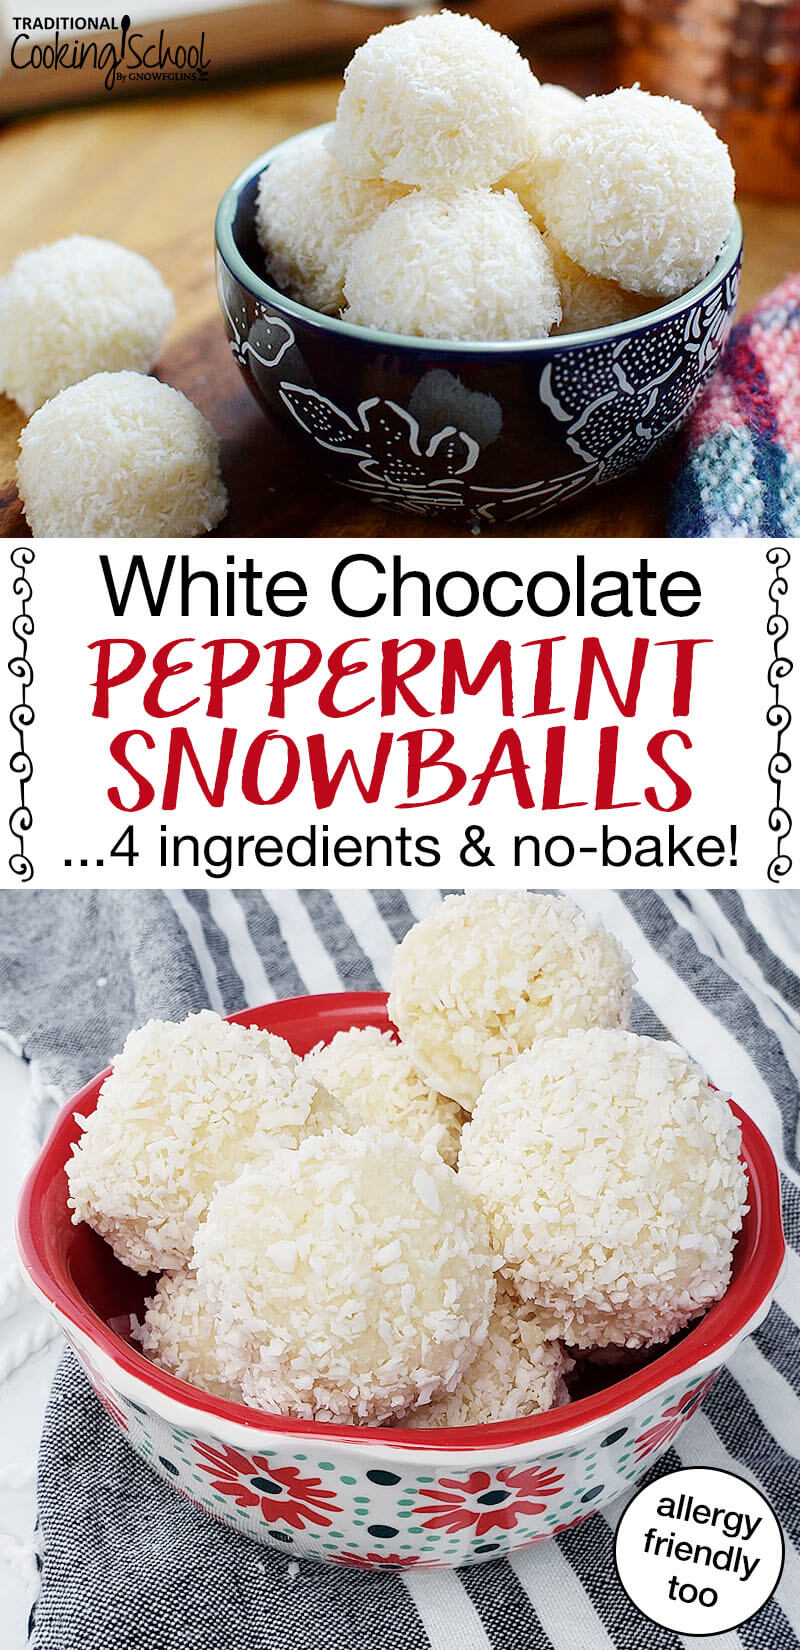 "Pinterest Pin with two images. Both of a bowl filled with white chocolate peppermint snowballs. Text overlay says, ""White Chocolate Peppermint Snowballs ...4 ingredients & no-bake! Allergy friendly, too"""